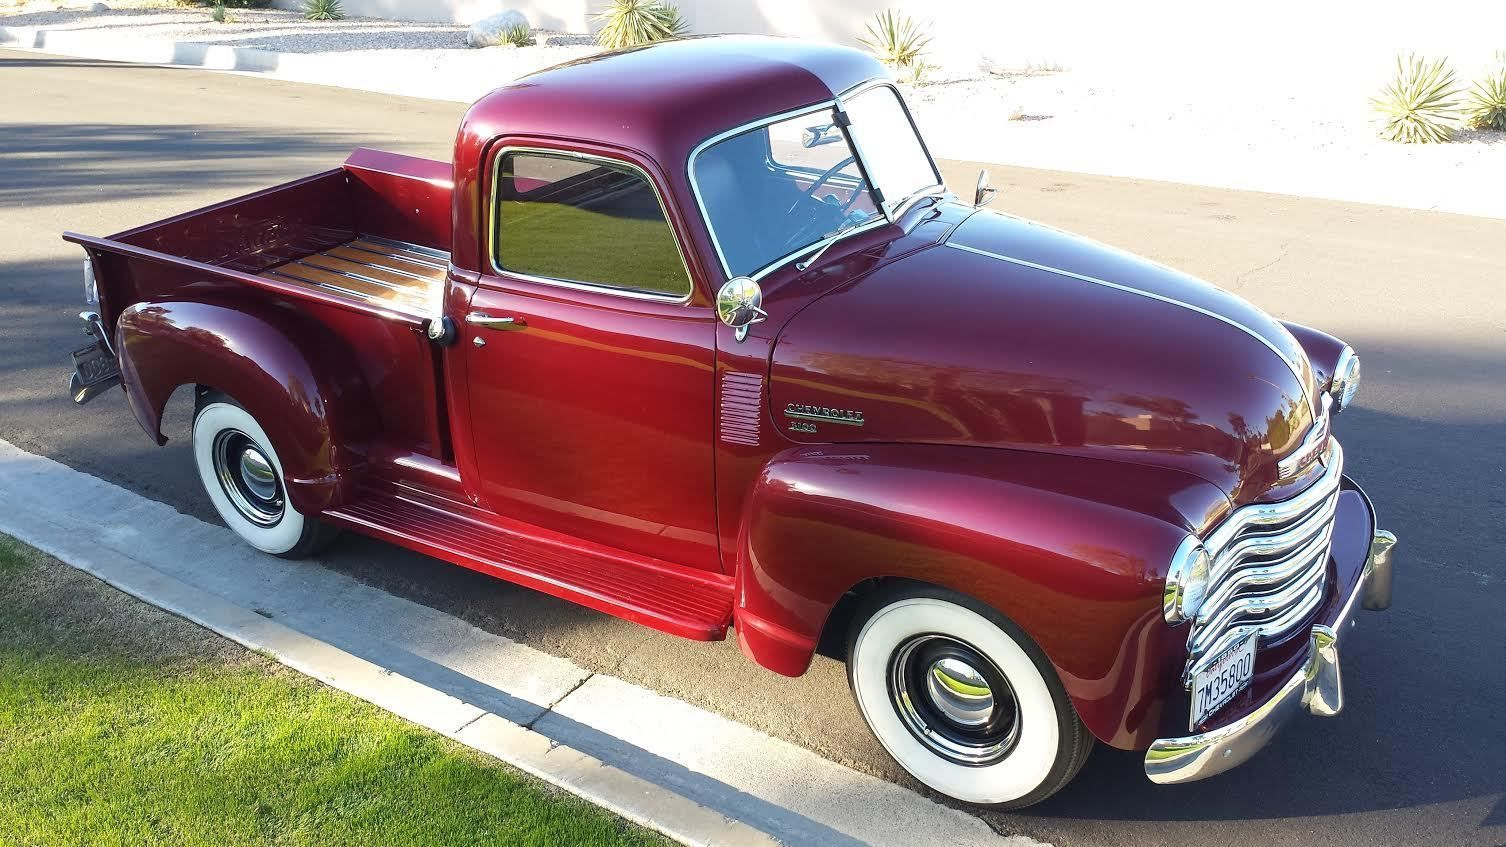 Pickup 1952 chevy pickup for sale : 1952 Chevy Pickup   Just Rolling Along!   Pinterest   Chevy ...